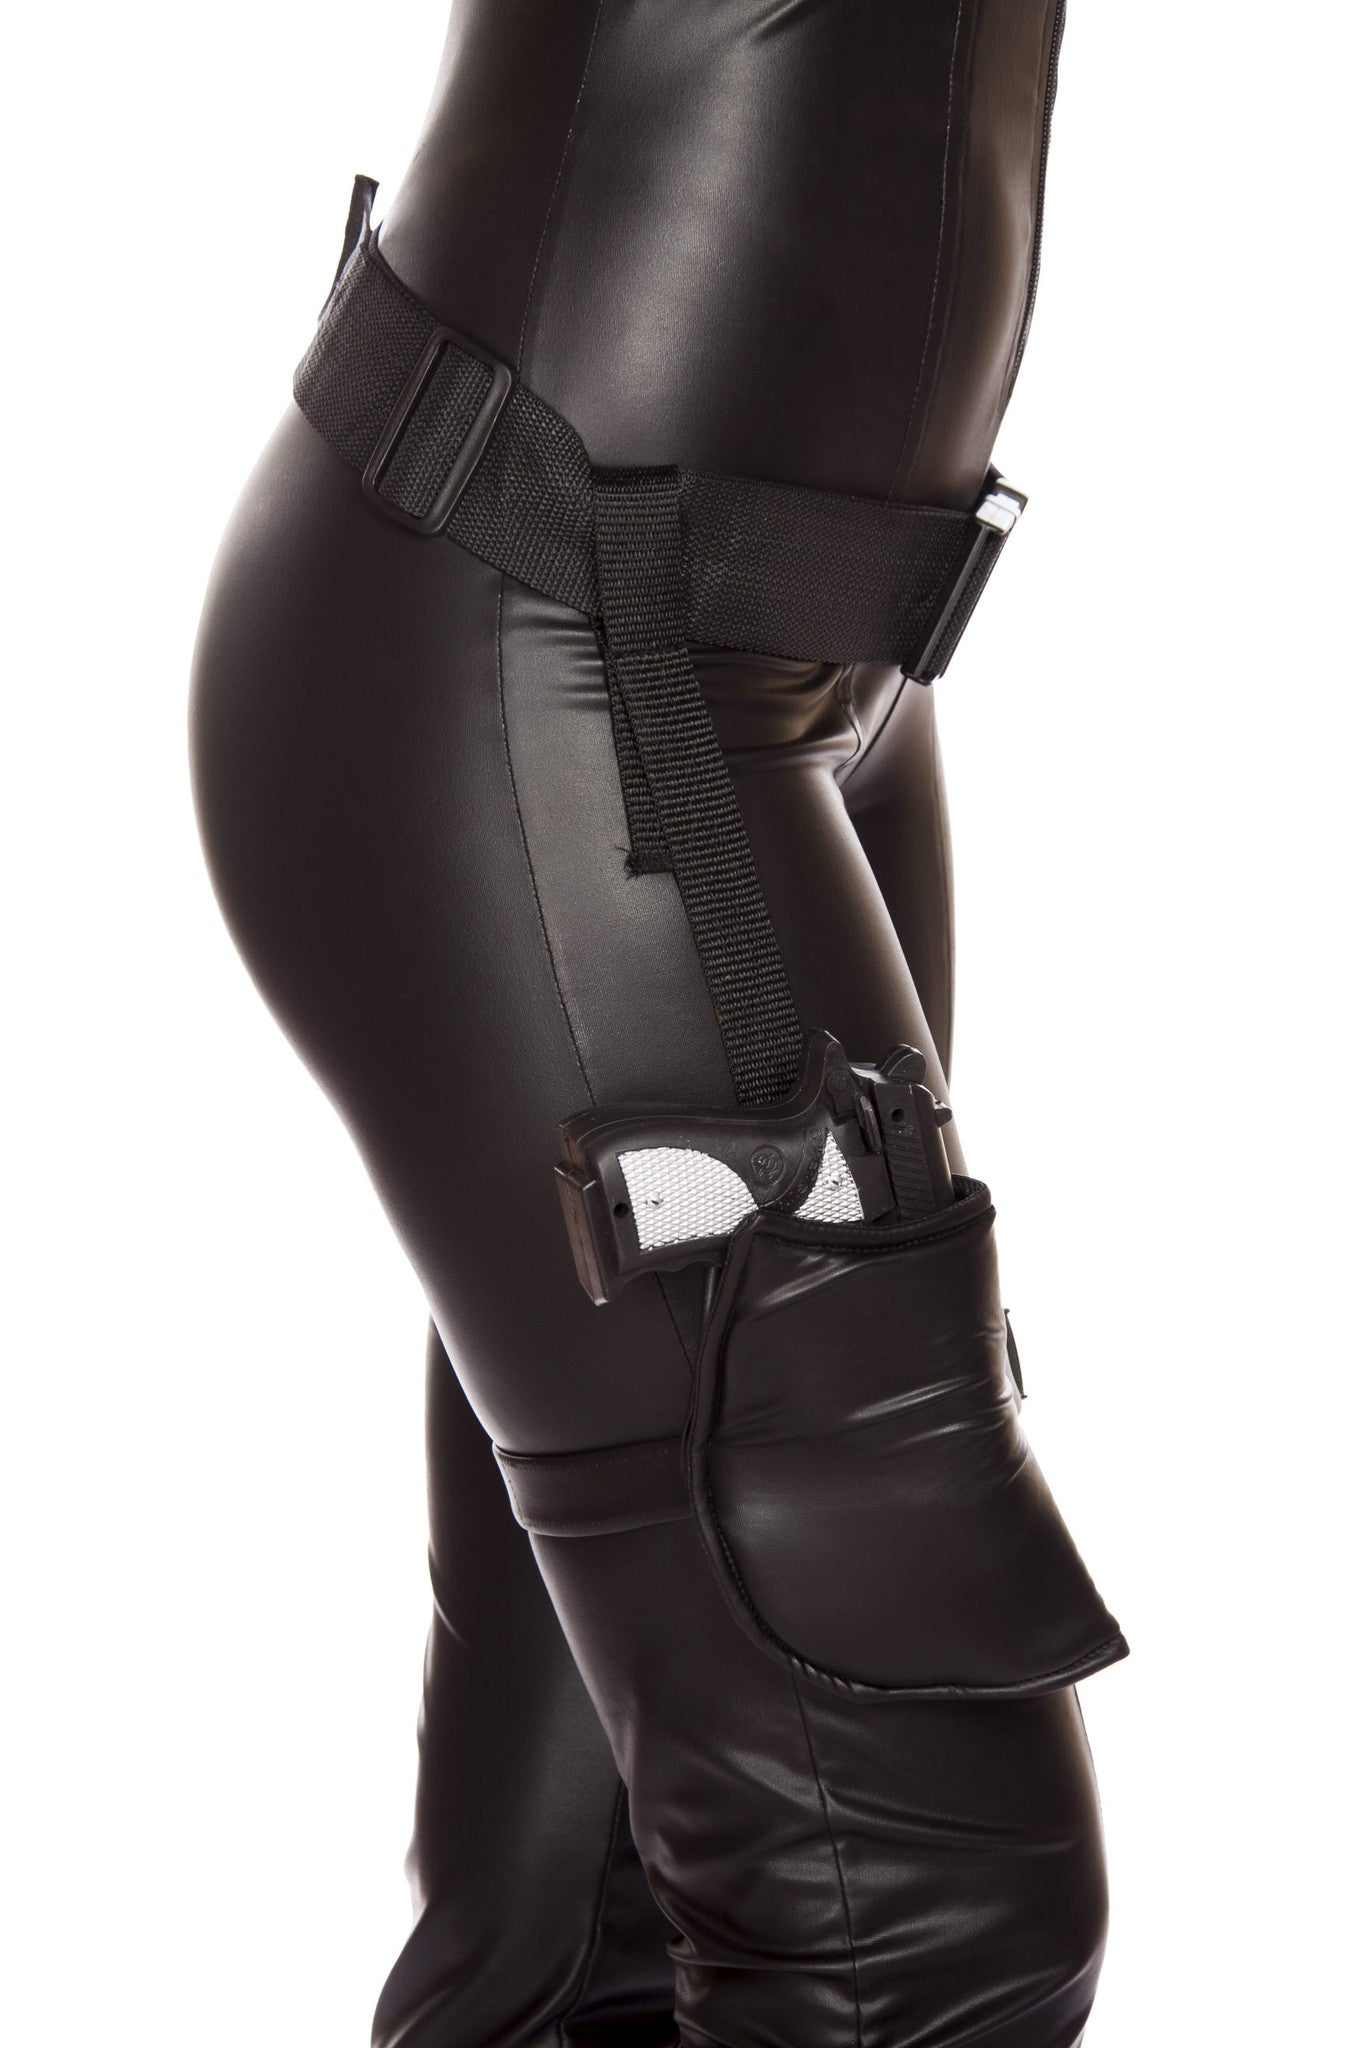 G4570 Leg Holster with Connected Belt (Gun Not Included) ${description} | Roma Costume and Roma Confidential wholesale manufacturer of Women Apparel bulk world wide wholesale and world wide drop ship services for Adult Halloween Costumes, Sexy and Elegant Lingerie, Rave Clothing, Club wear, and Christmas Costumes. New Arrivals,New Products,Accessories, Roma Costume, Inc., Roma Costume, Roma Confidential, Wholesale clothing, drop ship, drop ship service, Wholesale Lingerie, Wholesale Adult Halloween Costumes, Rave Clothing, EDM Clothing, Festival Wear, Christmas Costumes, Clubwear, Club wear.